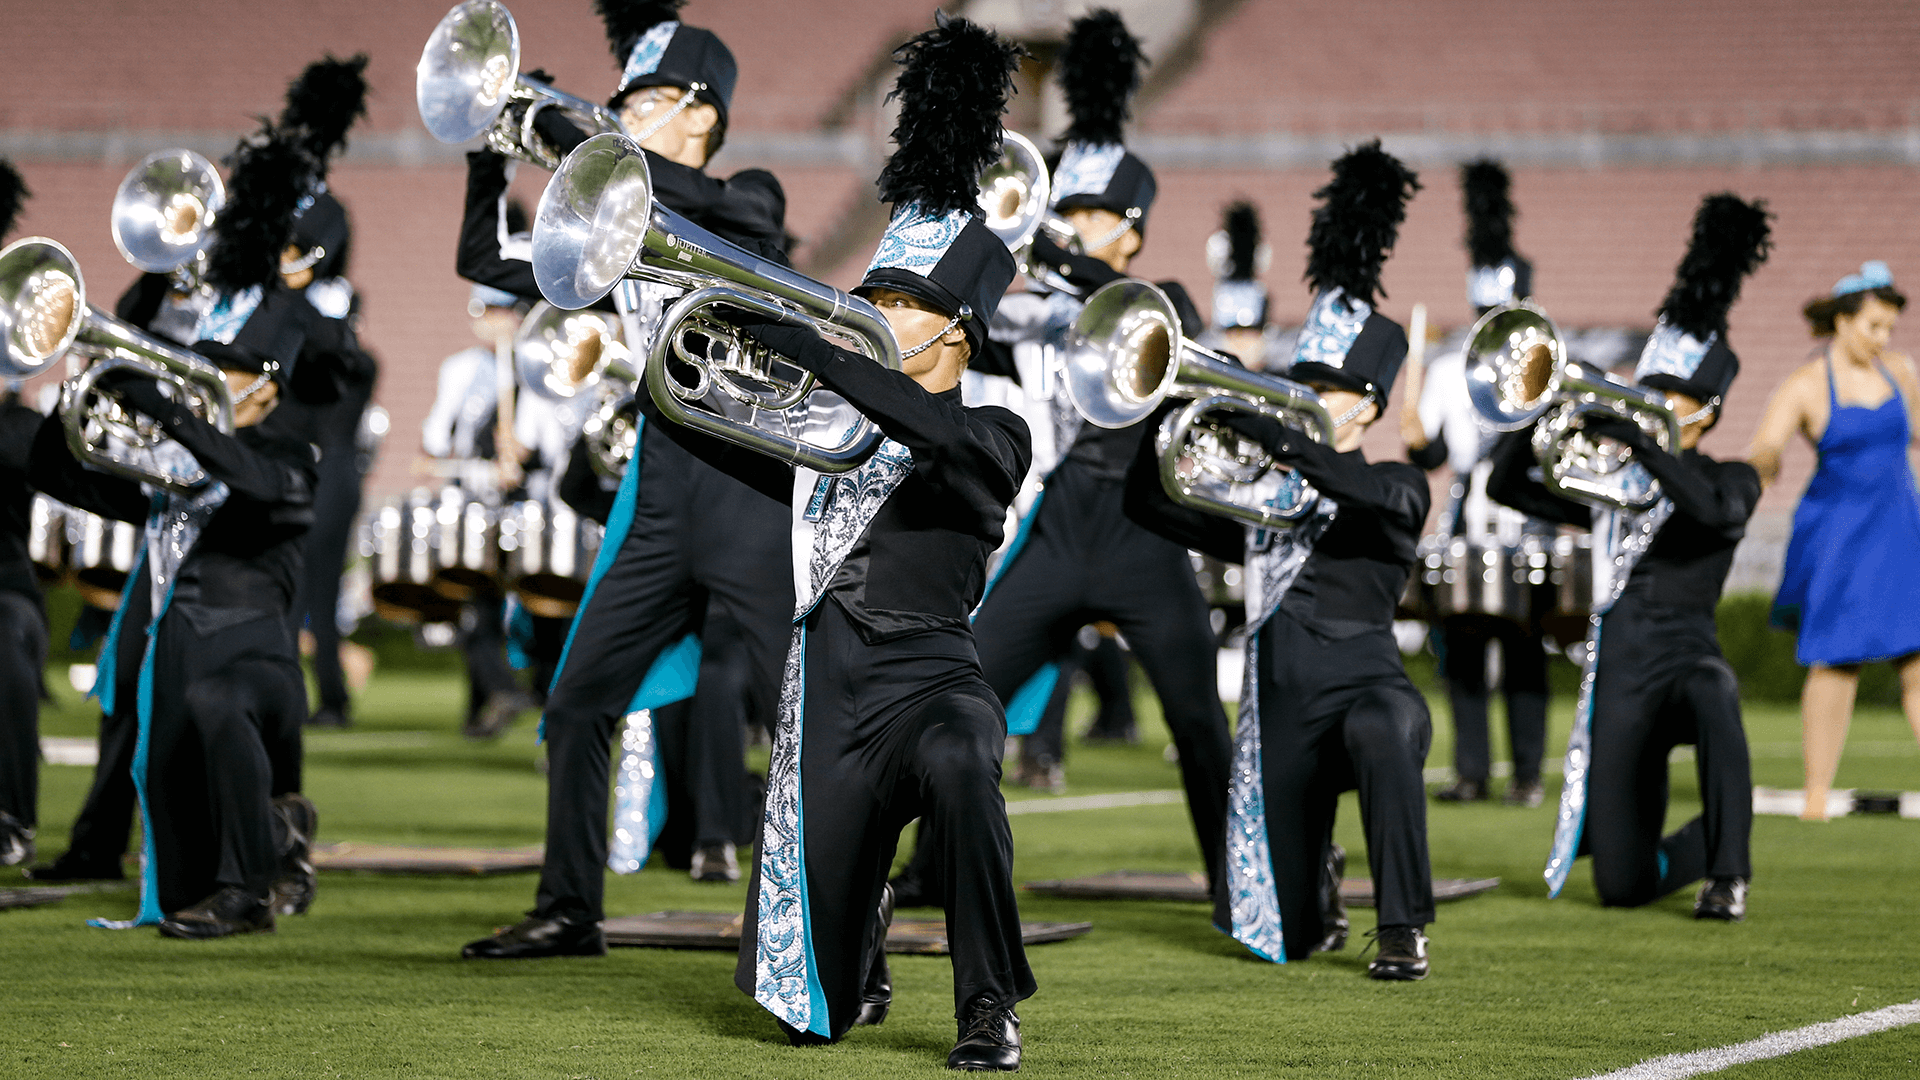 Drum Corps at the Rose Bowl